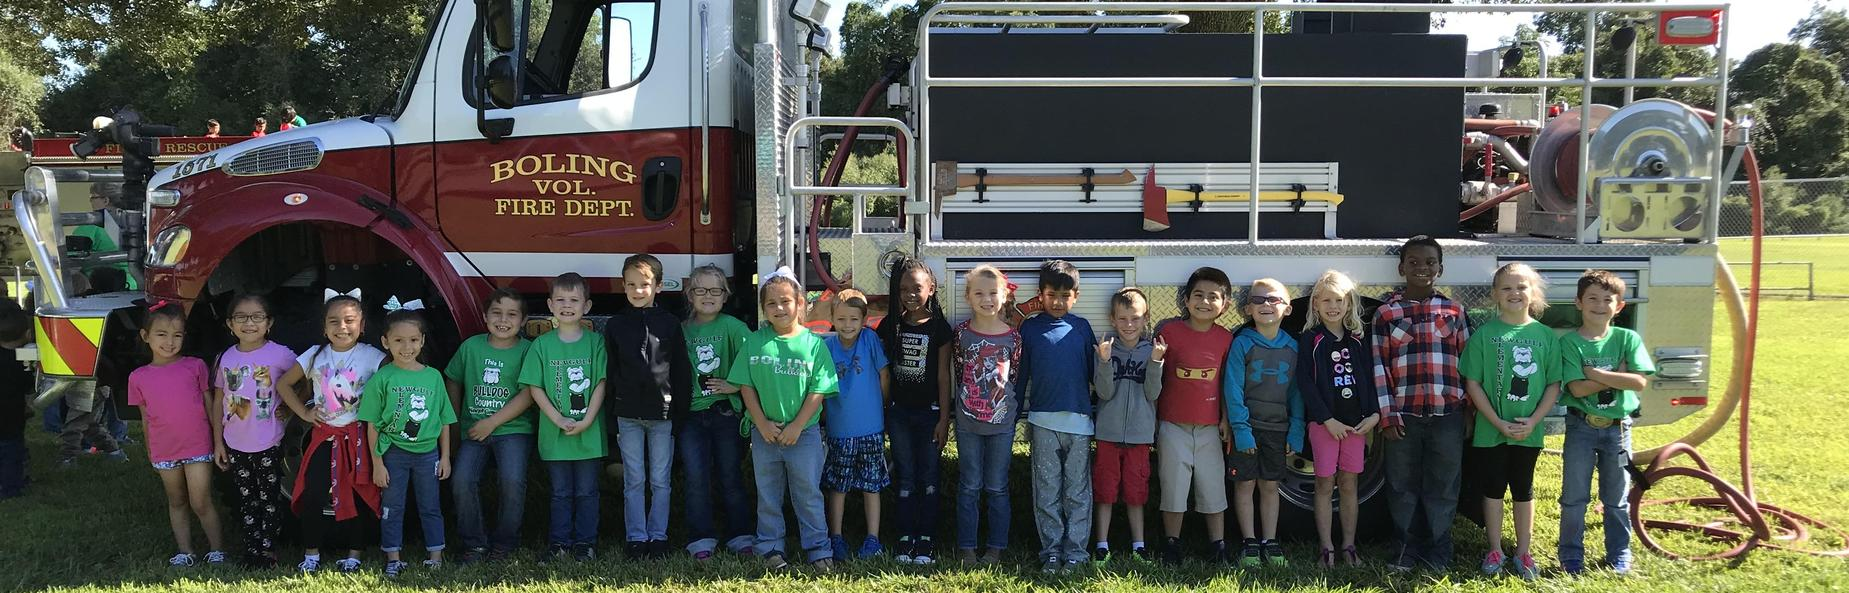 school children lined up in front of a fire truck